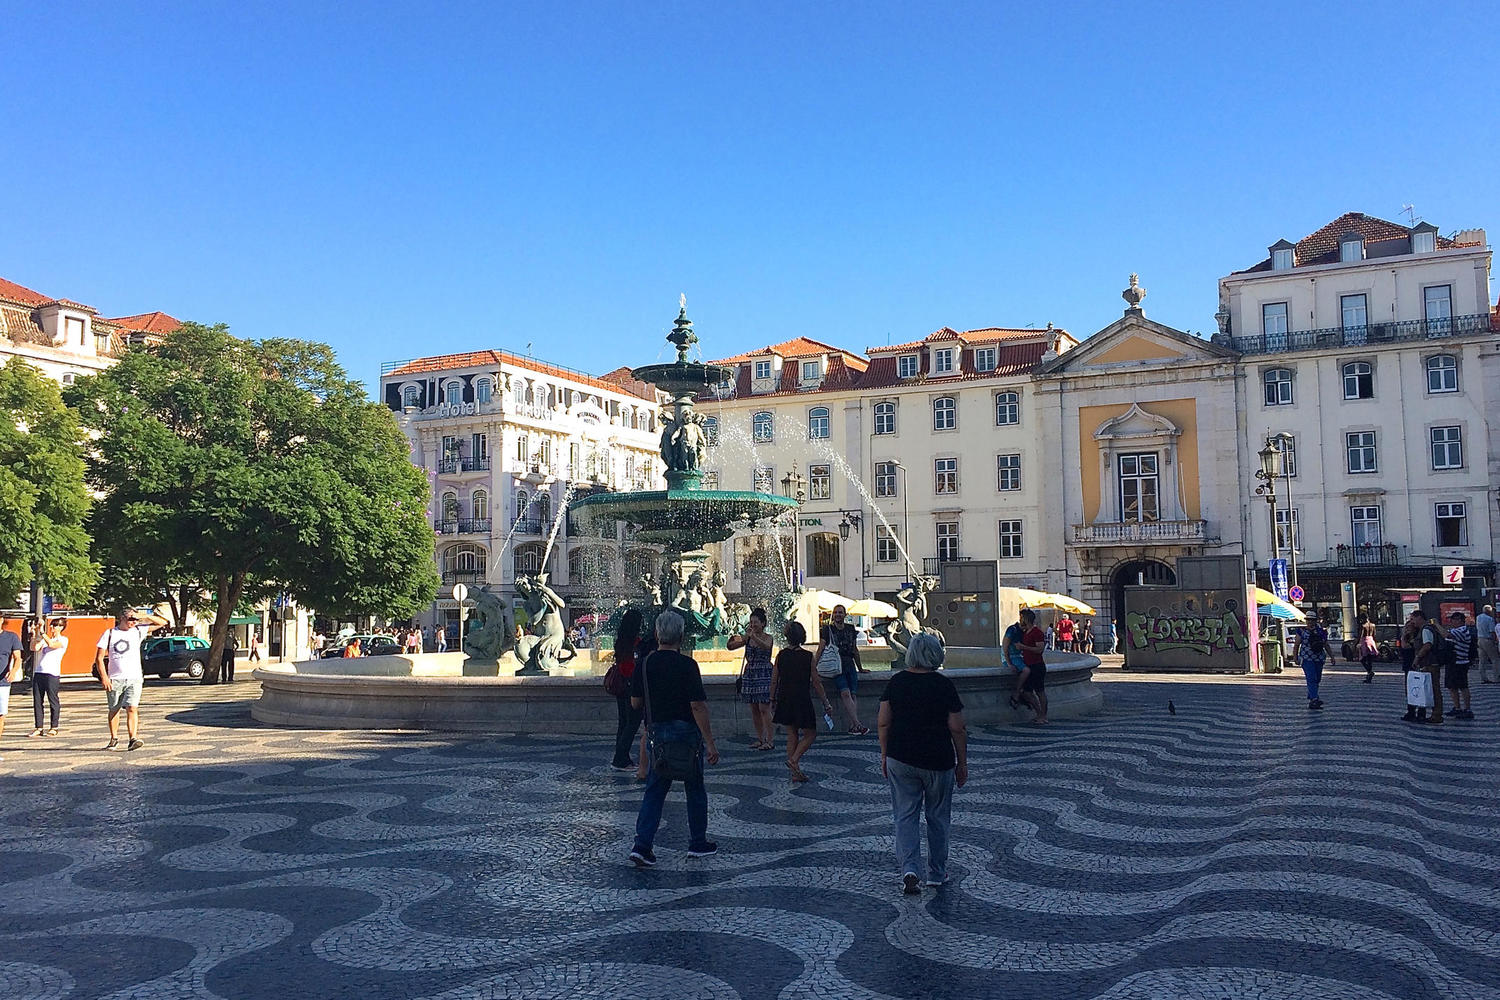 Pretty square on a sunny day in Lisbon